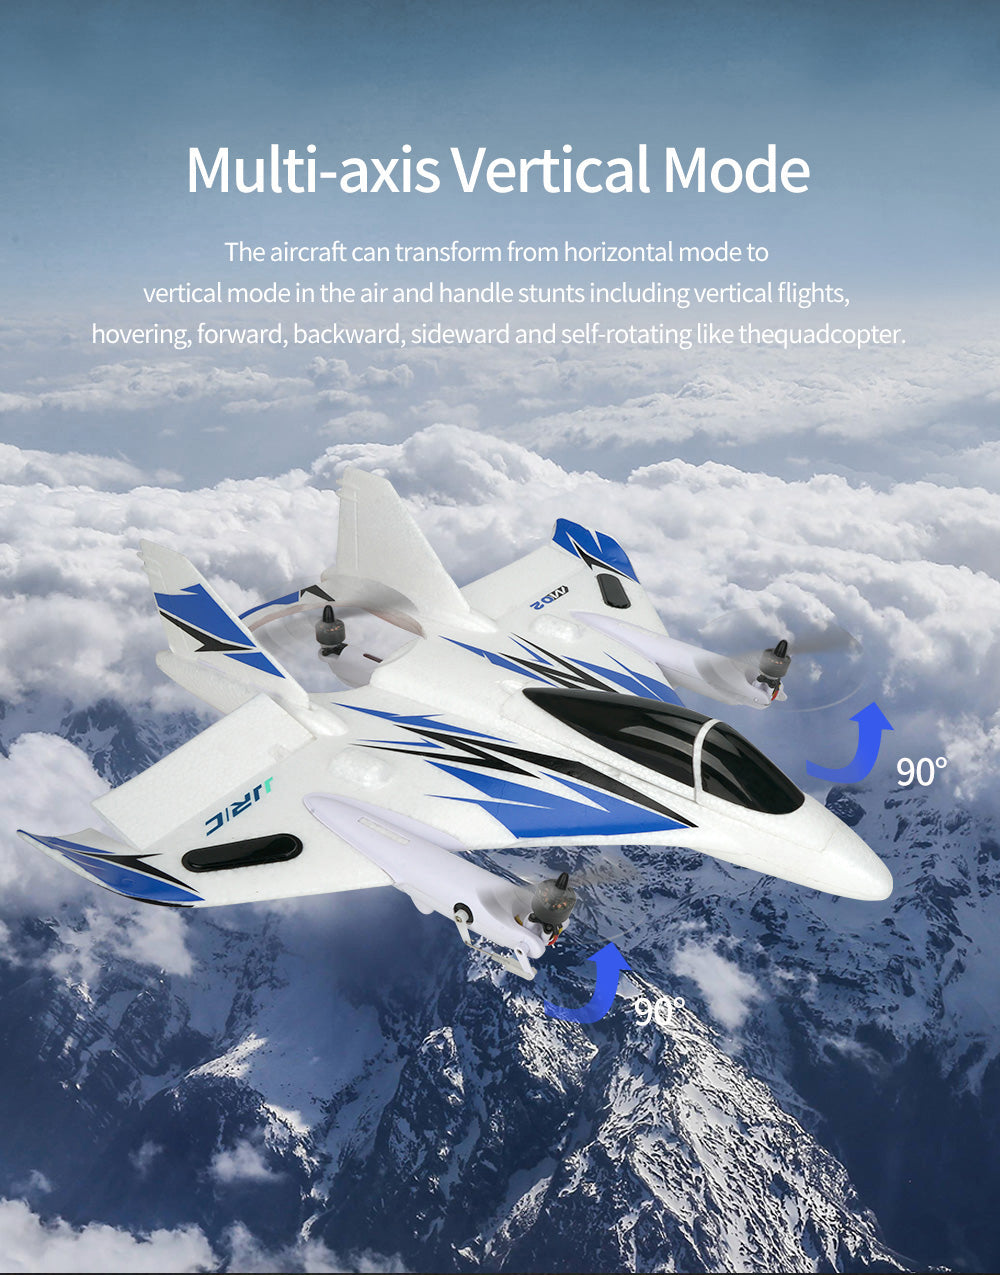 Multi-axis Vertical Mode,The aircraft can transform from horizontal mode to vertical mode in the air and handle stunts including vertical flights,hovering, forward, backward, side ward and self rotating like the quad copter.